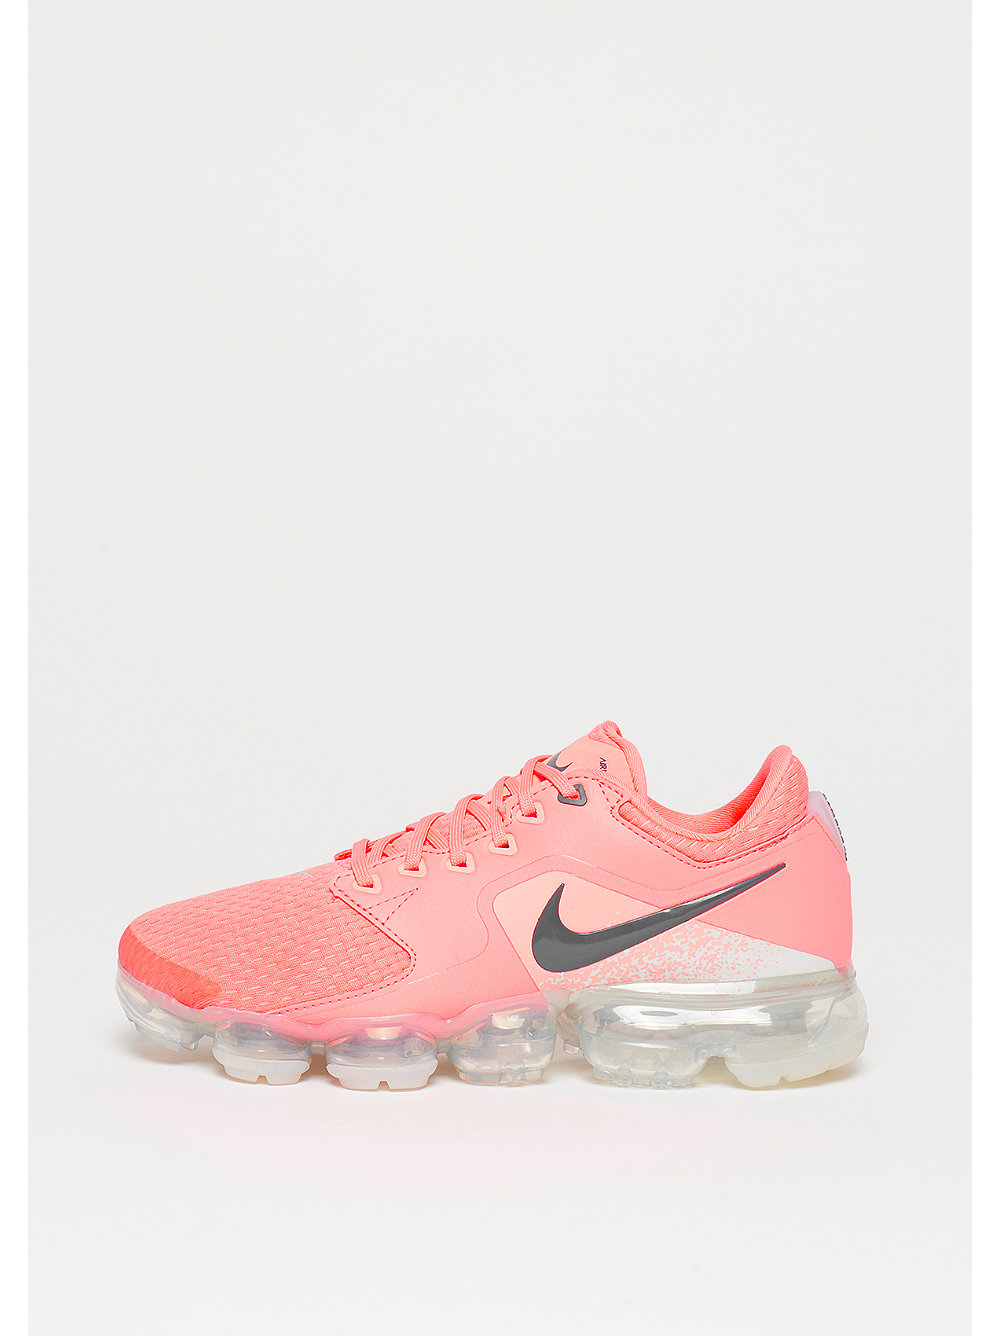 NIKE Air VaporMax lt atomic pinkdark grey-metallic silver